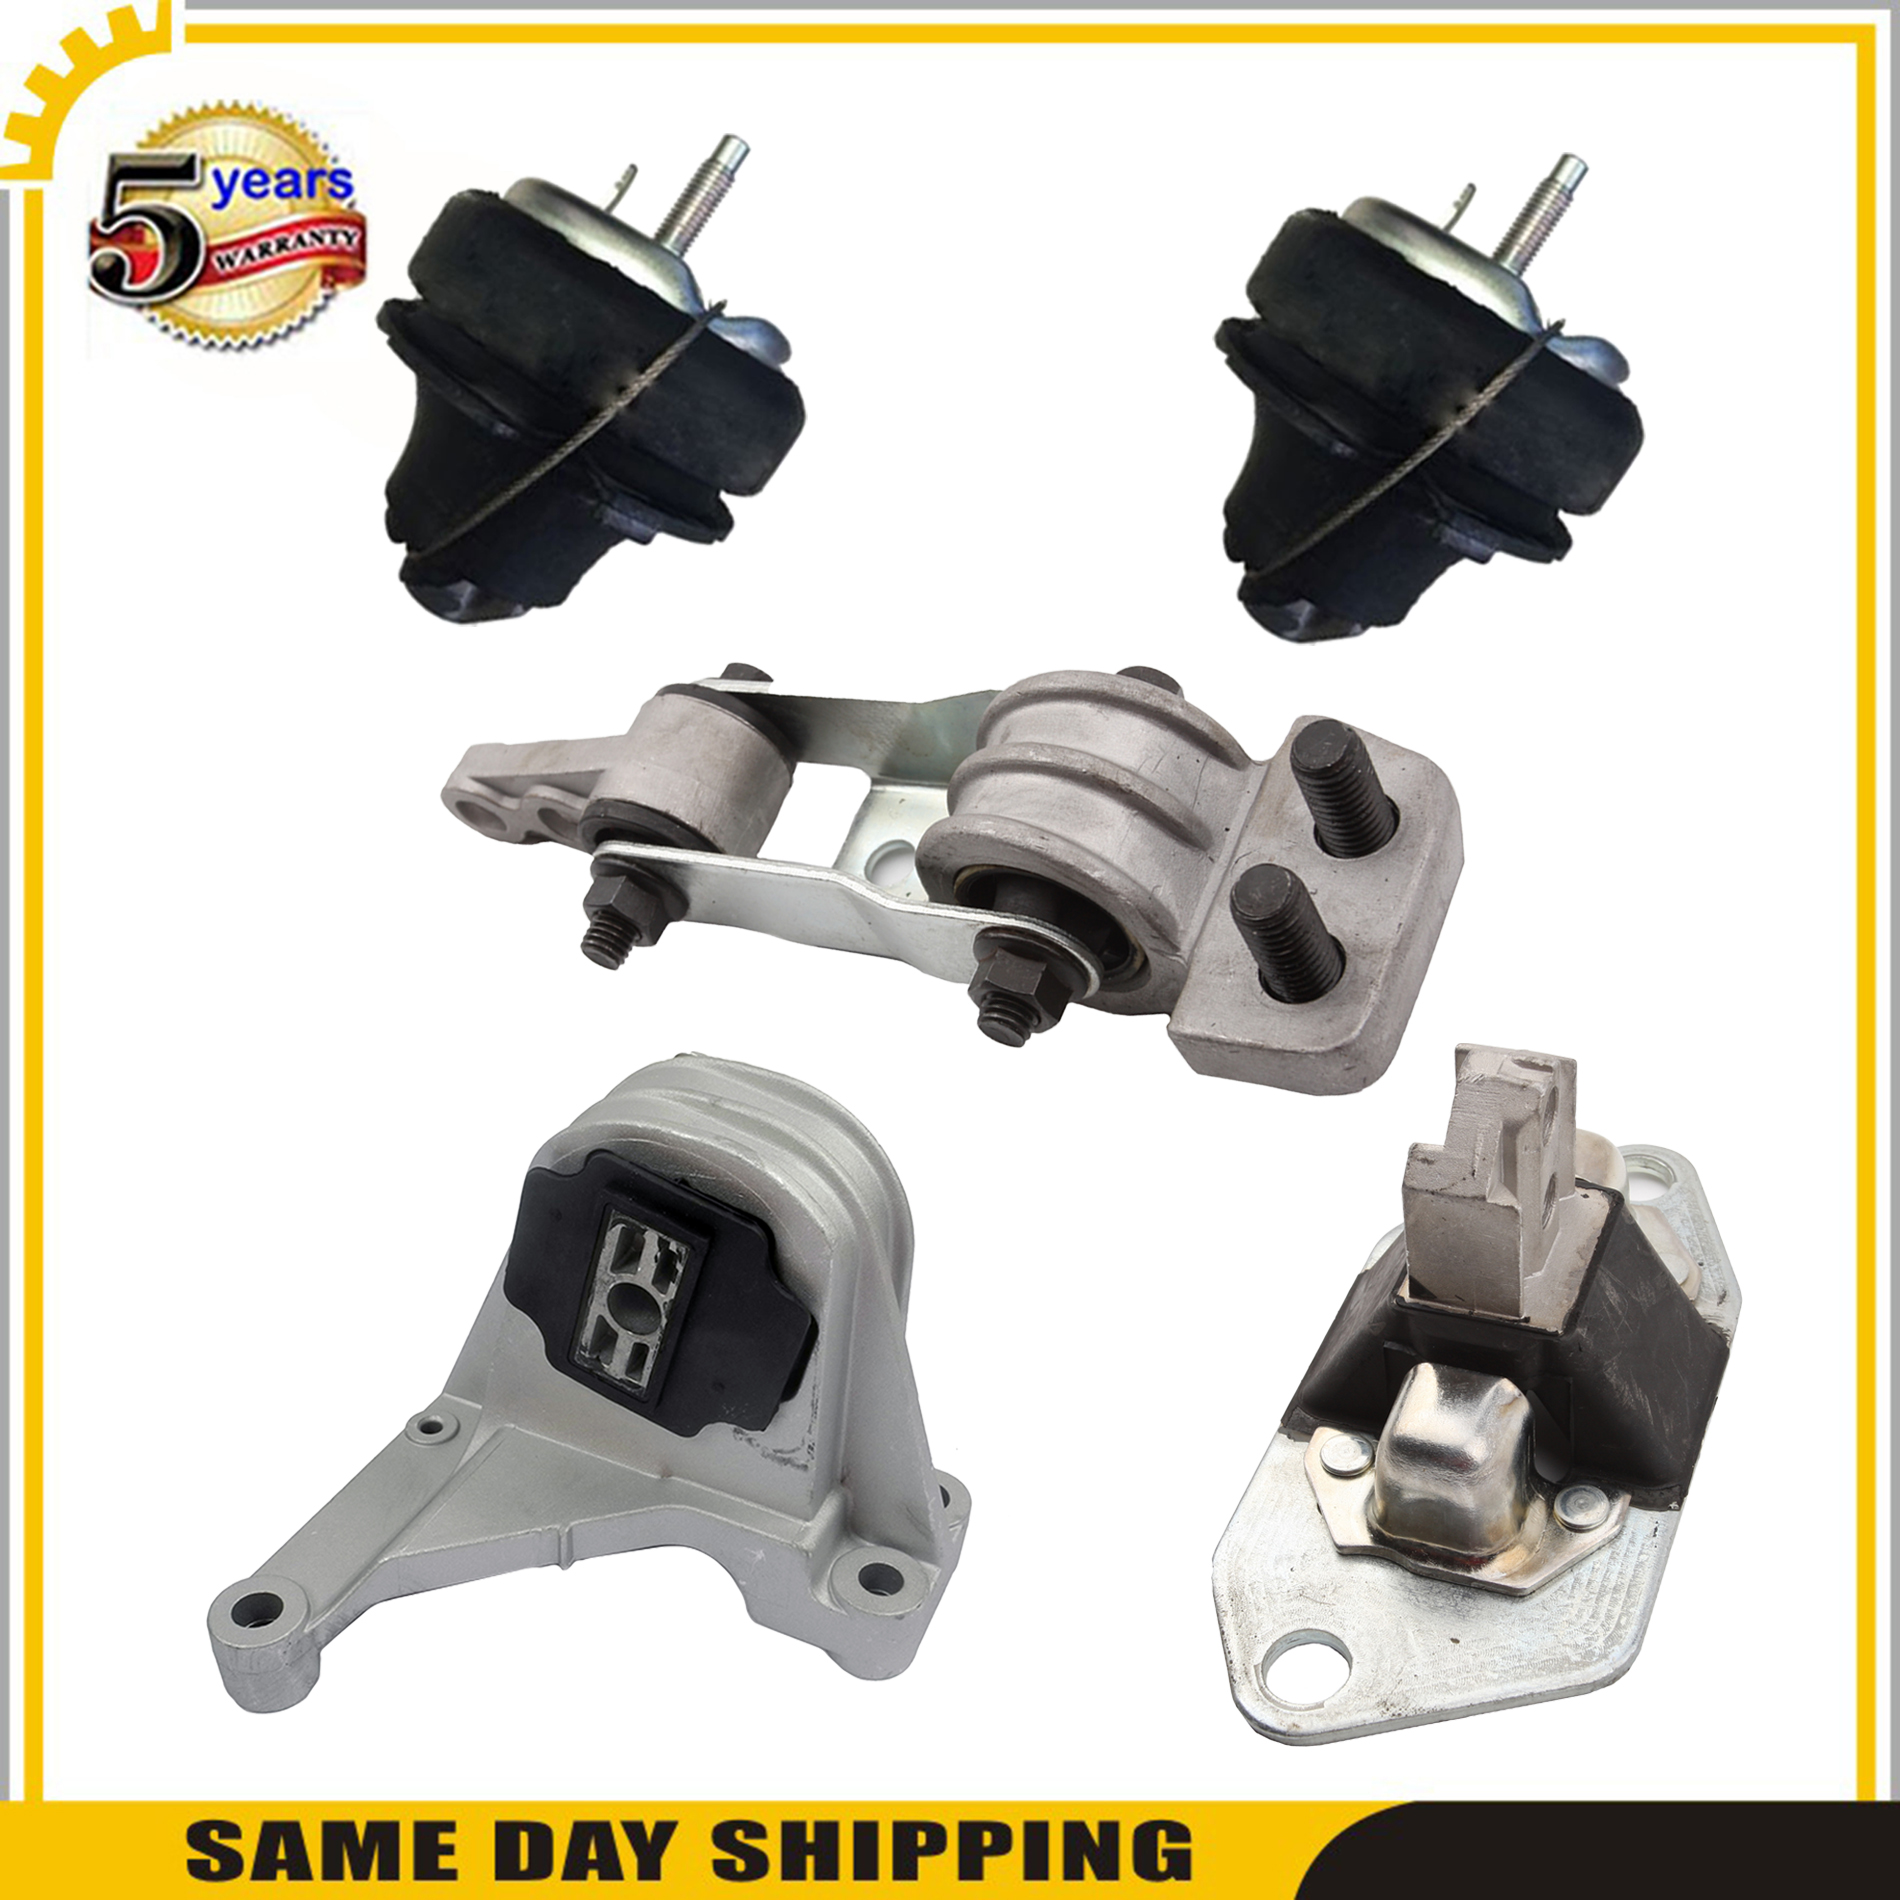 3PCS MOTOR TRANSMISSION MOUNT FOR 2004-2006 VOLVO S80 2.5L 2003-2007 XC90 XC70